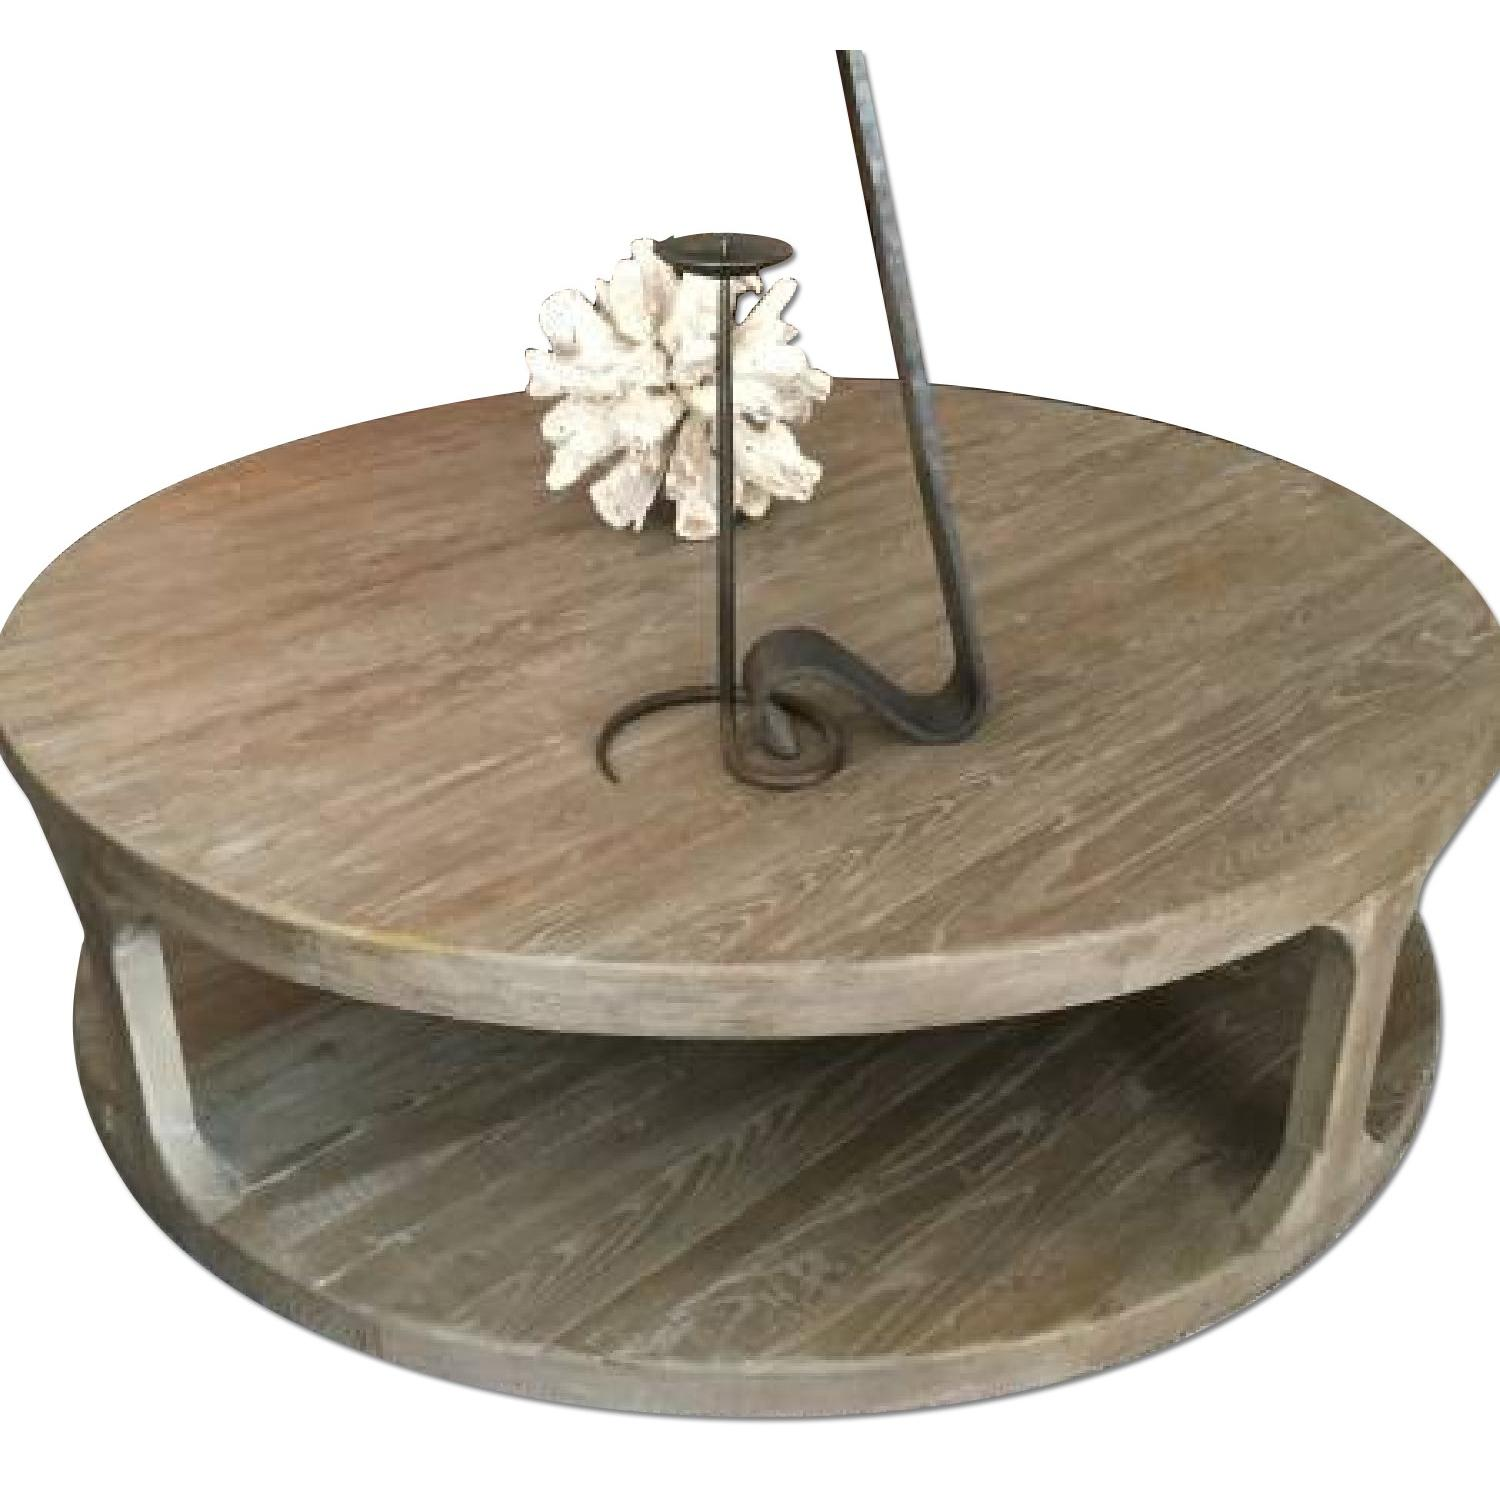 Restoration Hardware Martens Coffee Table - image-0